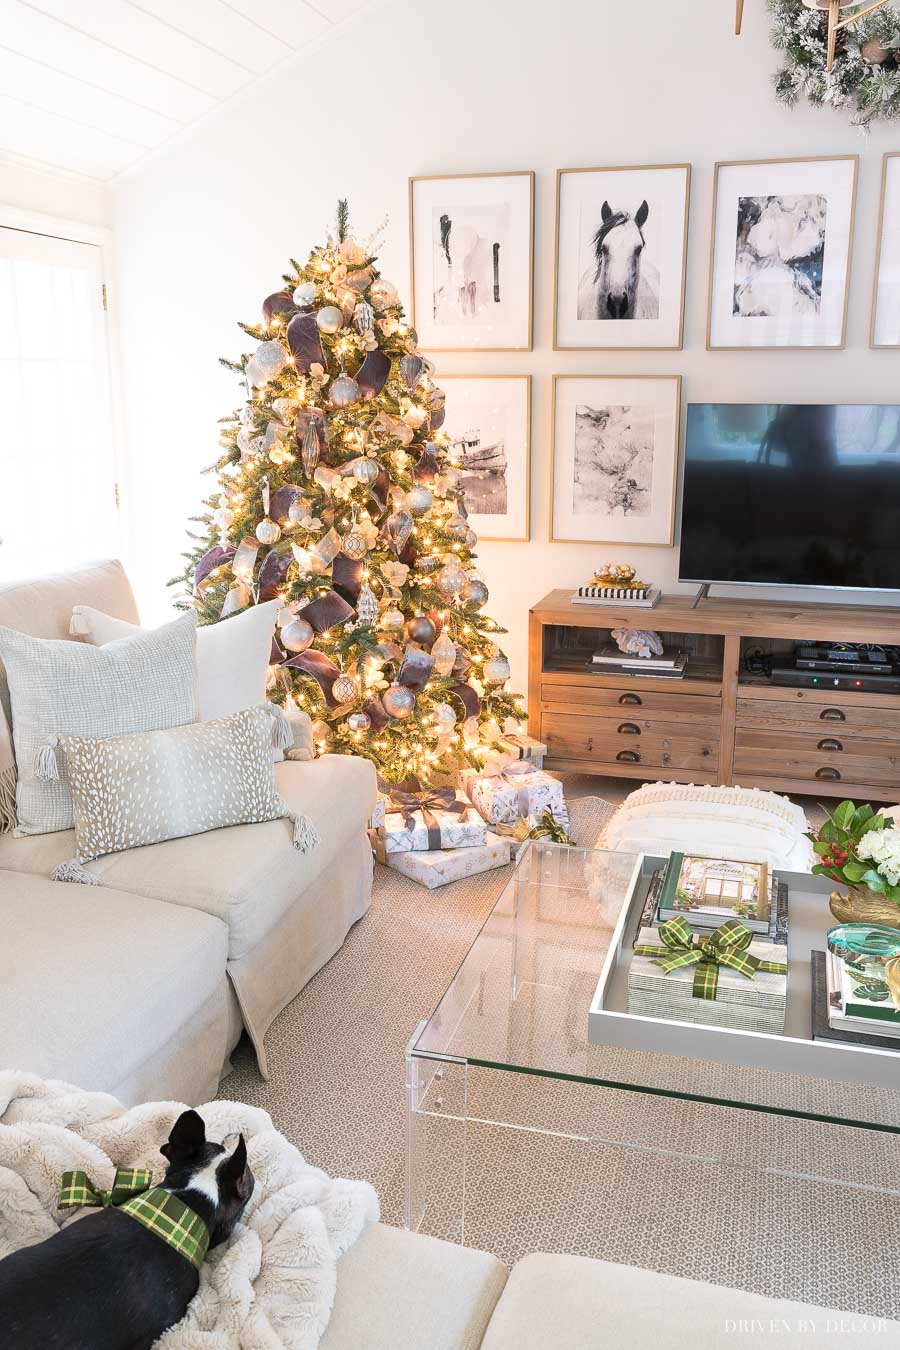 Loving how this New England home is decorated for Christmas - the Christmas tree is gorgeous!